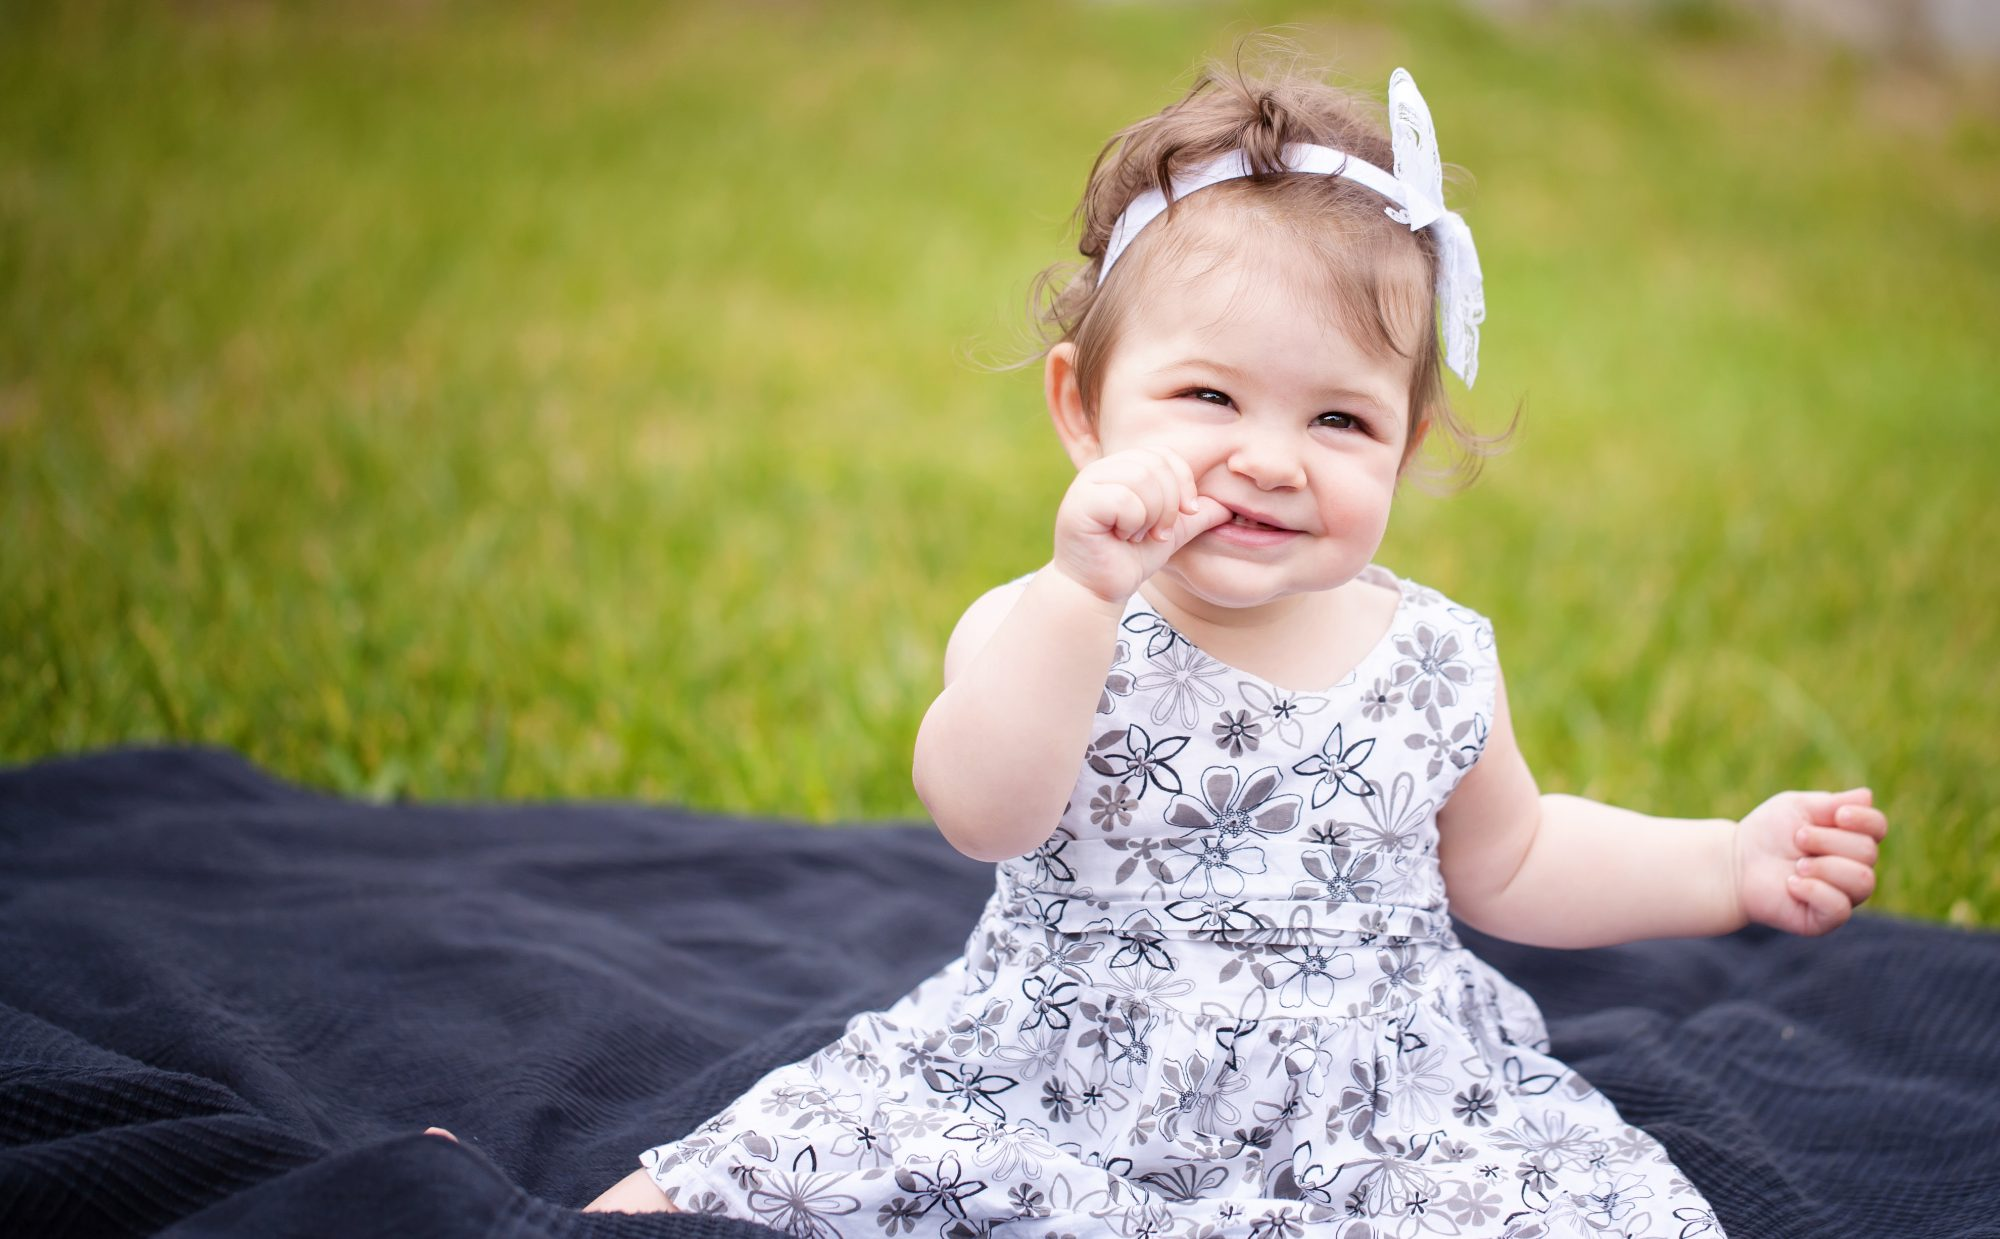 Baby Girl in Grass Wearing Dress